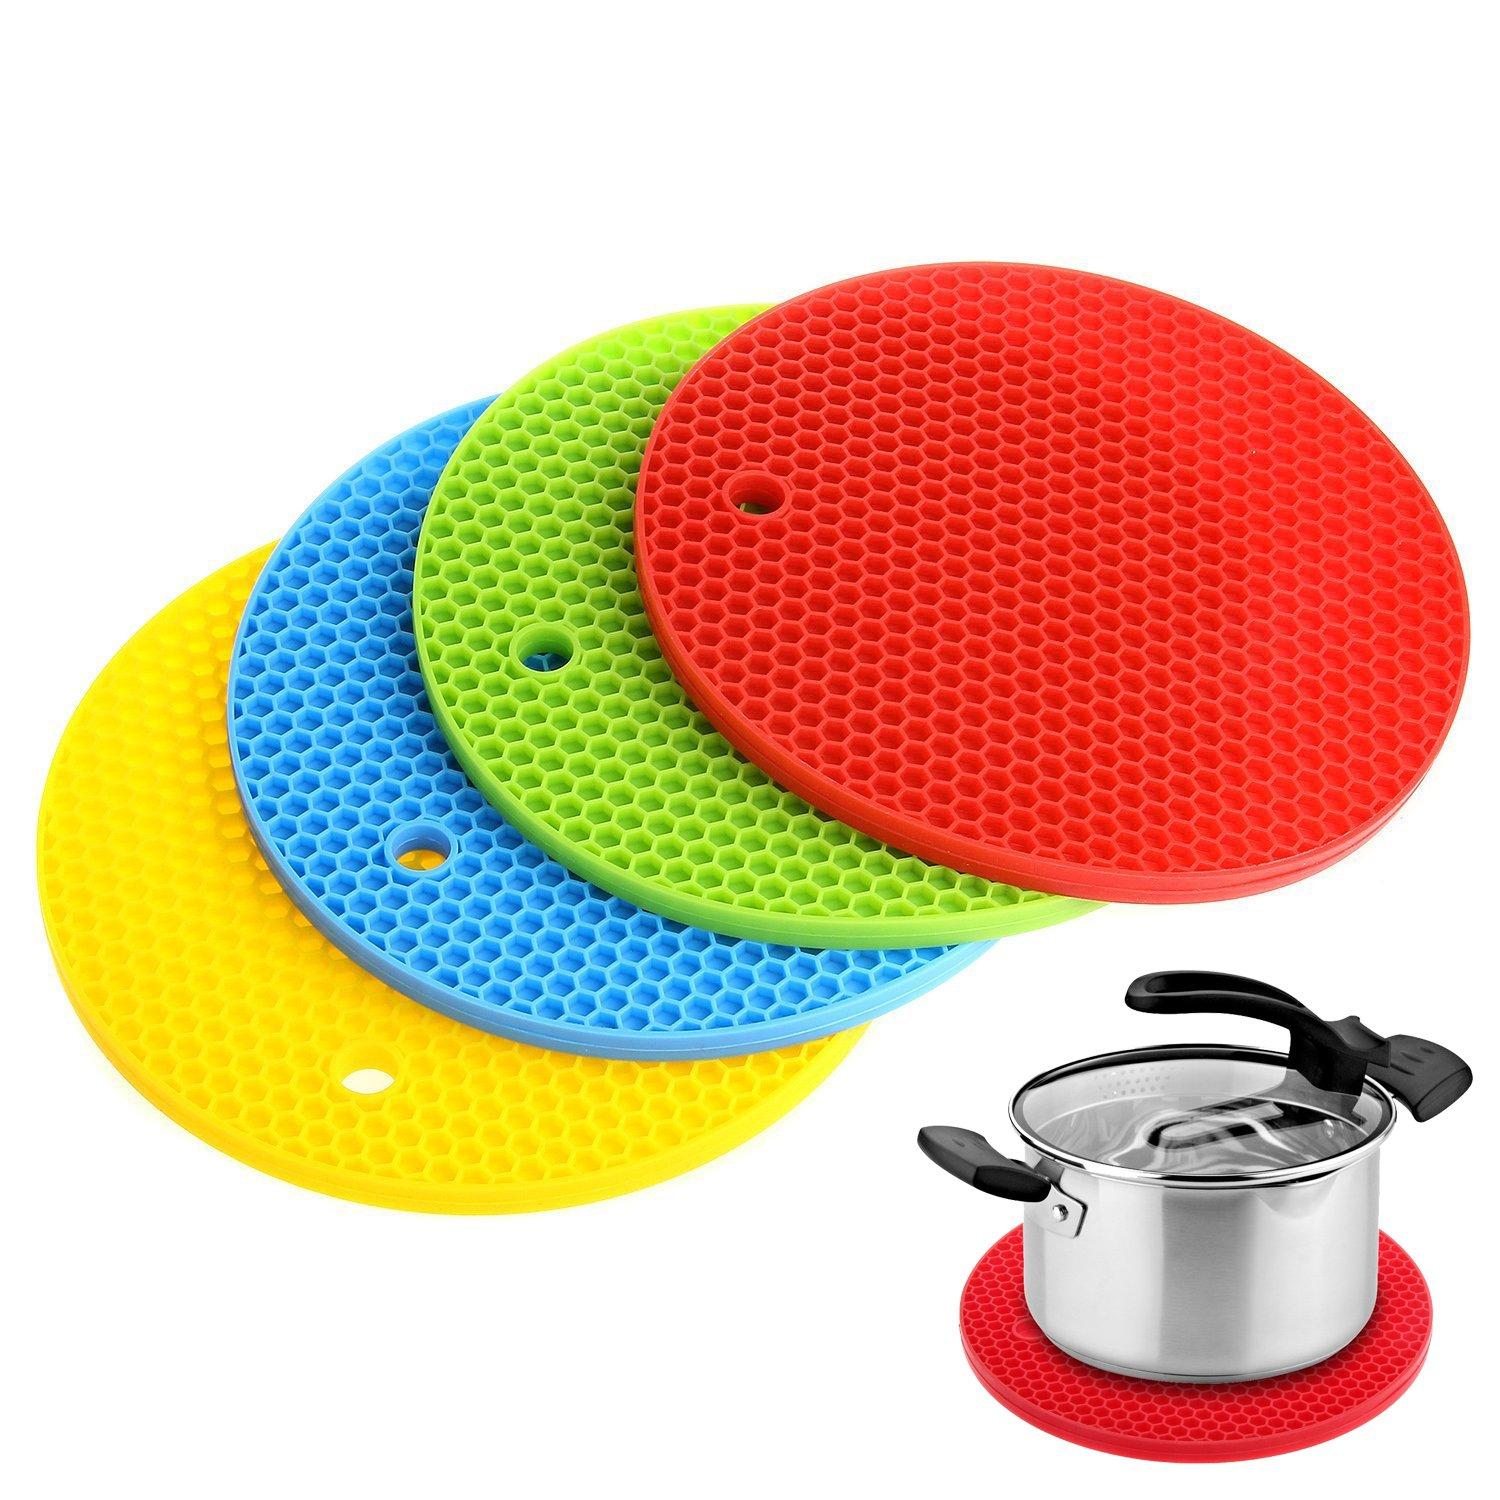 Silicone Pot Holder, Uniwit® 4 PCS Trivet Mat, Hot Pads, Perfect For Modern Home Decor, Silicone Heat Resistant Coasters,Cup Insulation Mat, Tableware Insulation Pad Potholders Insulation Non-slip Mat,Non Slip, Flexible, Durable, Heat Resistant by Uniwit®